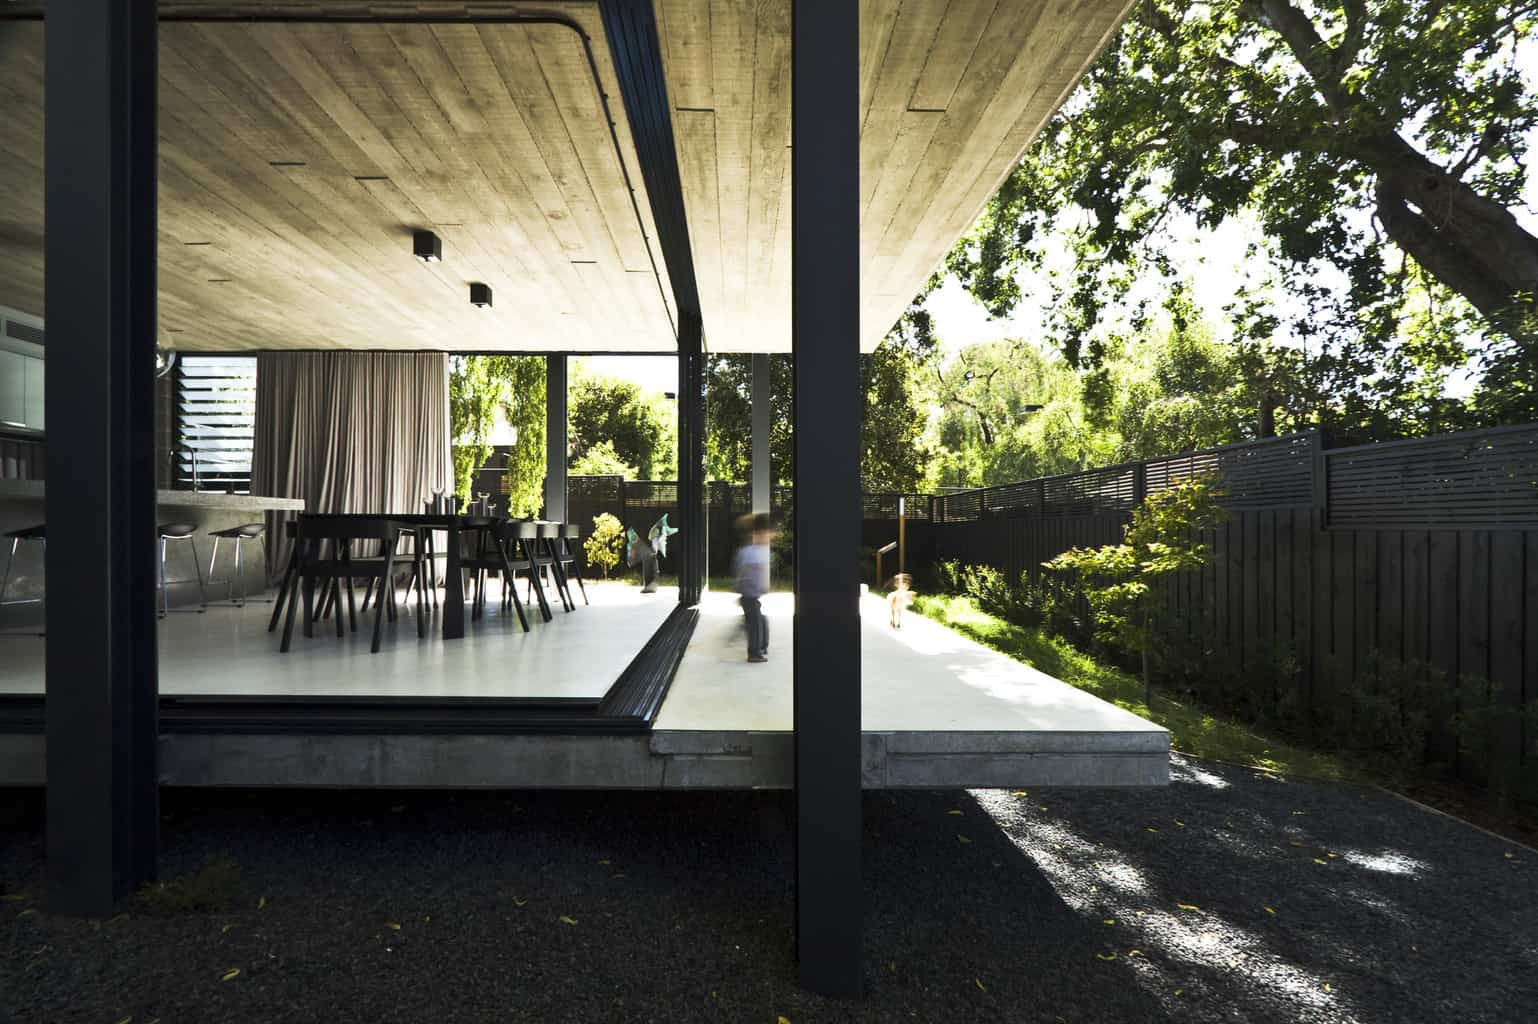 Tranquility, intimacy and sanctuary for the Elm & Willow house